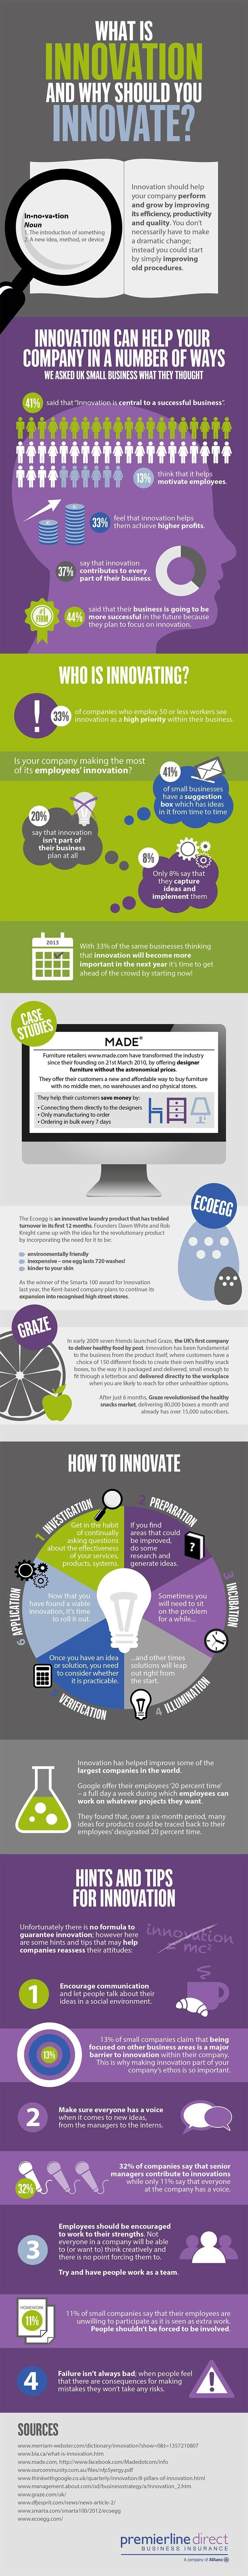 What Is Innovation And Why Should You Innovate? #Infographic